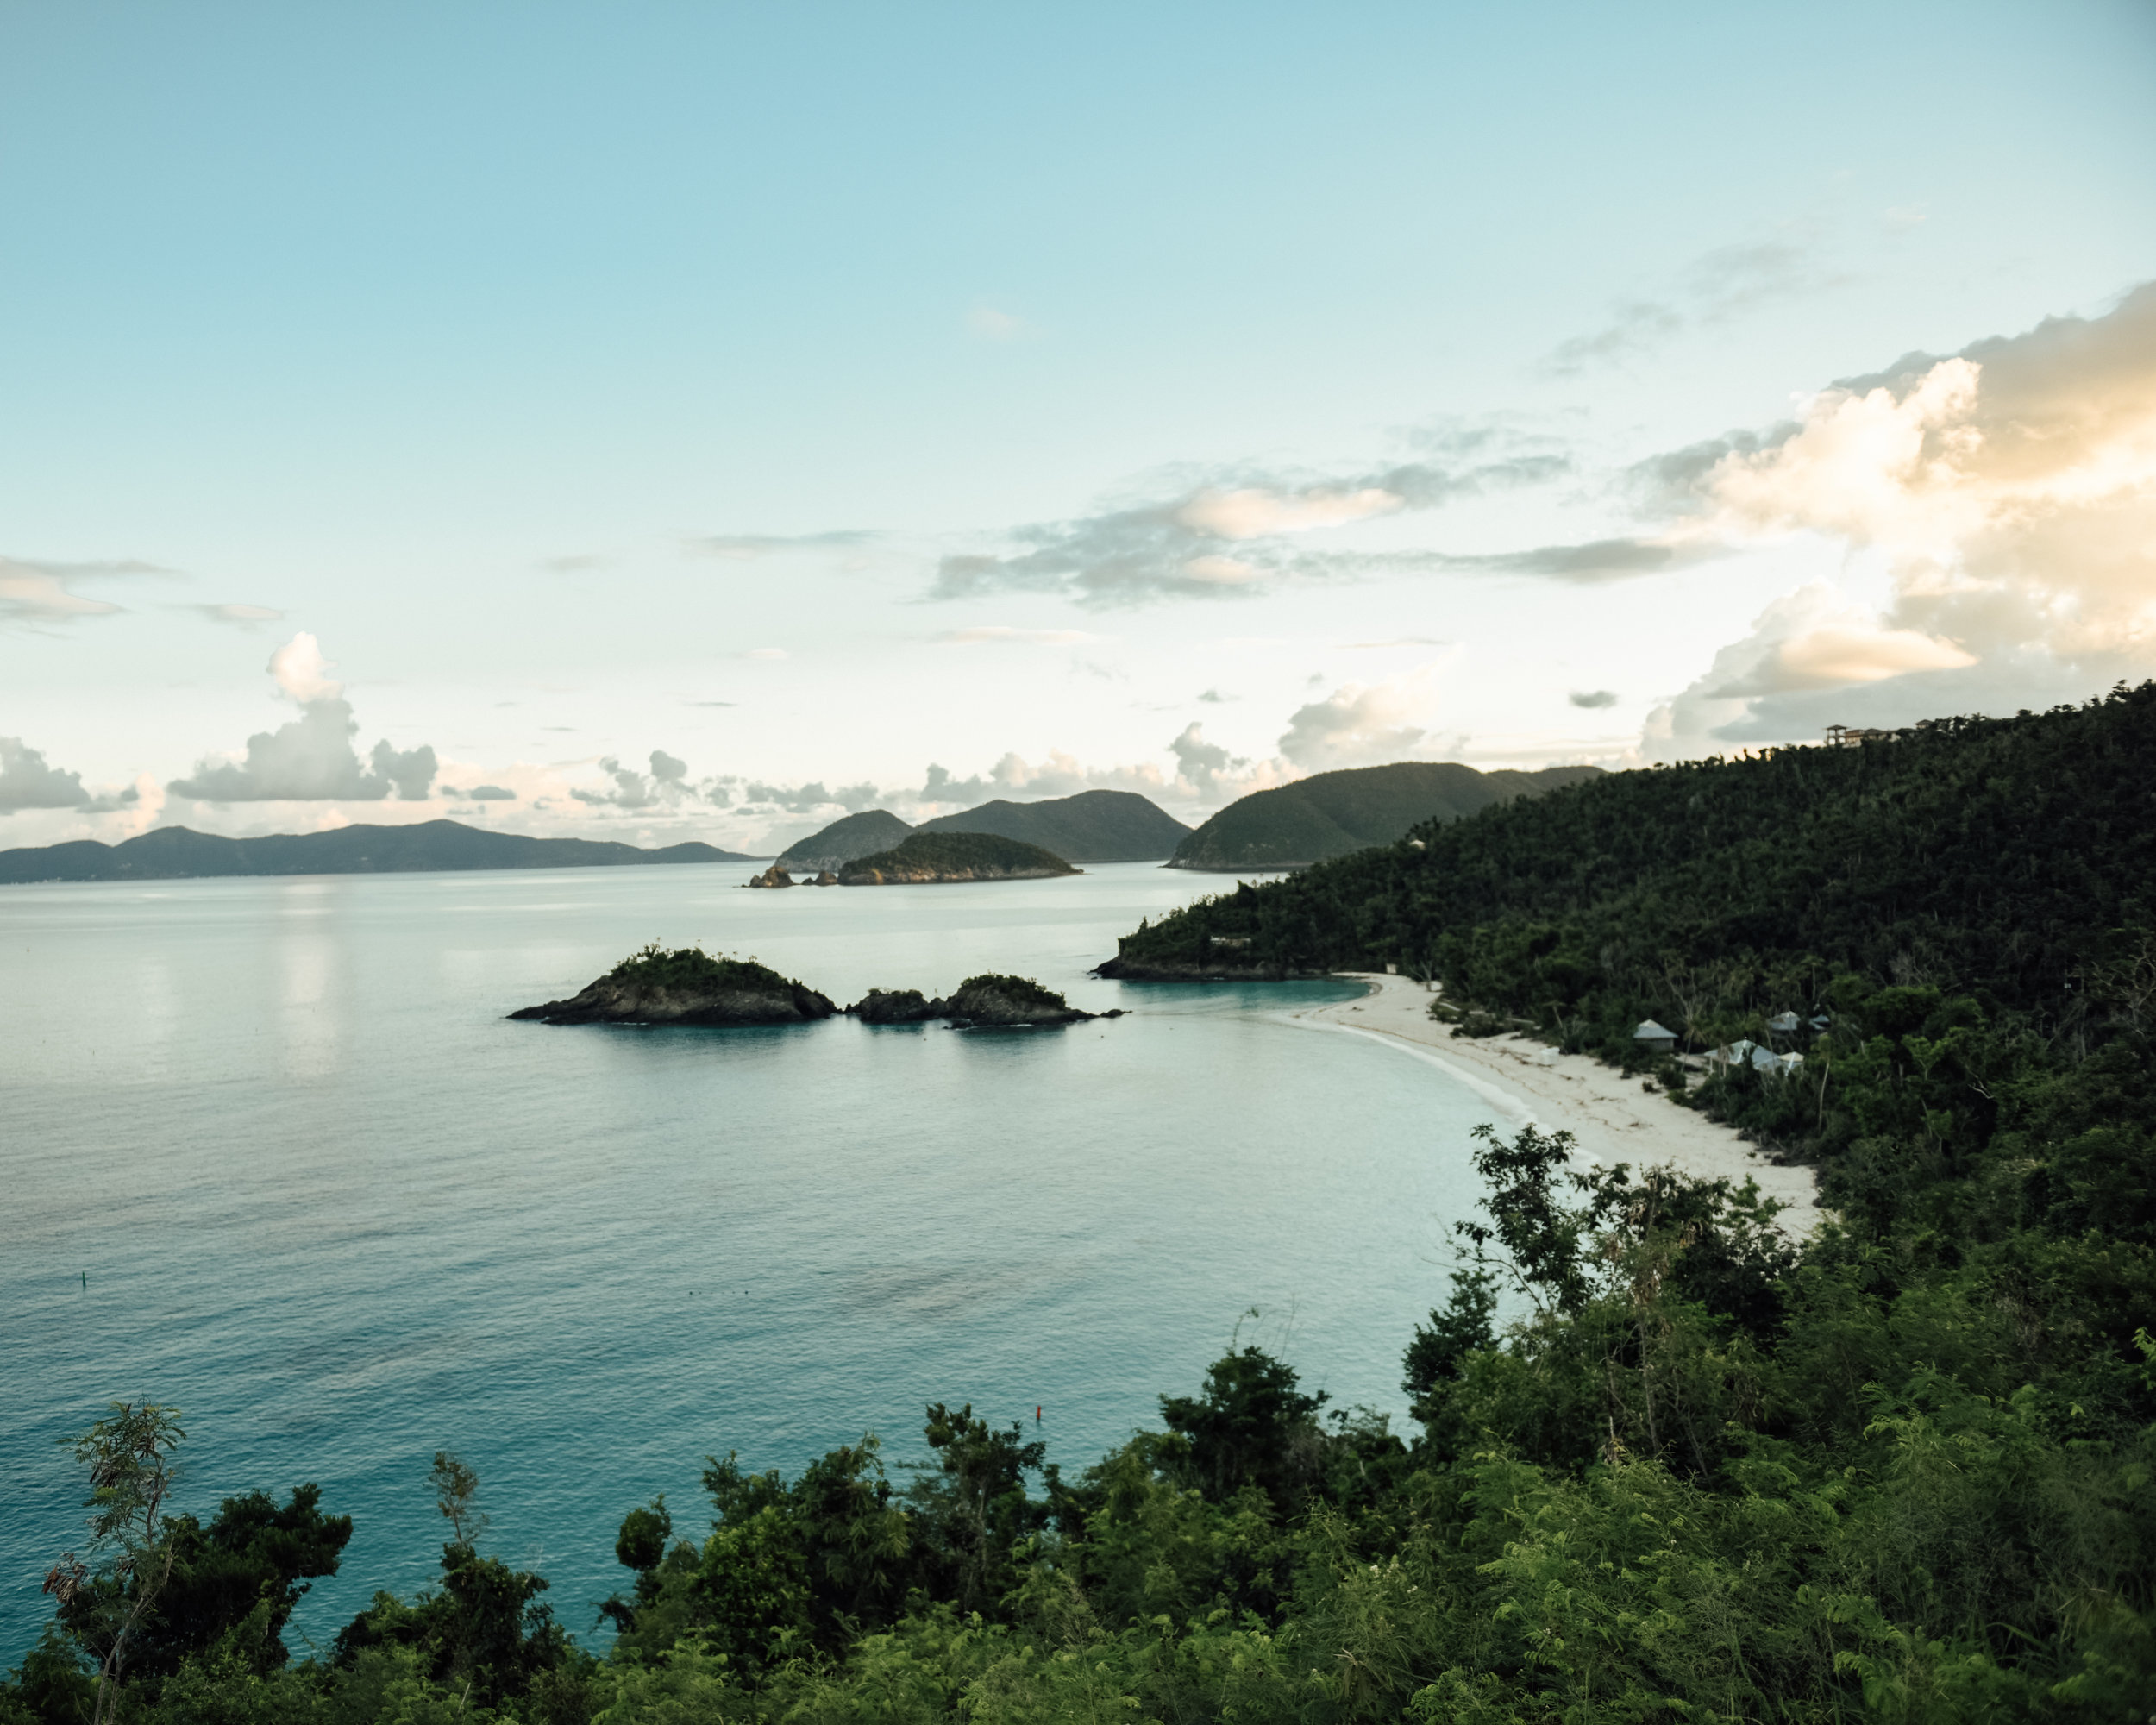 Views of Trunk Bay, St. John, USVI